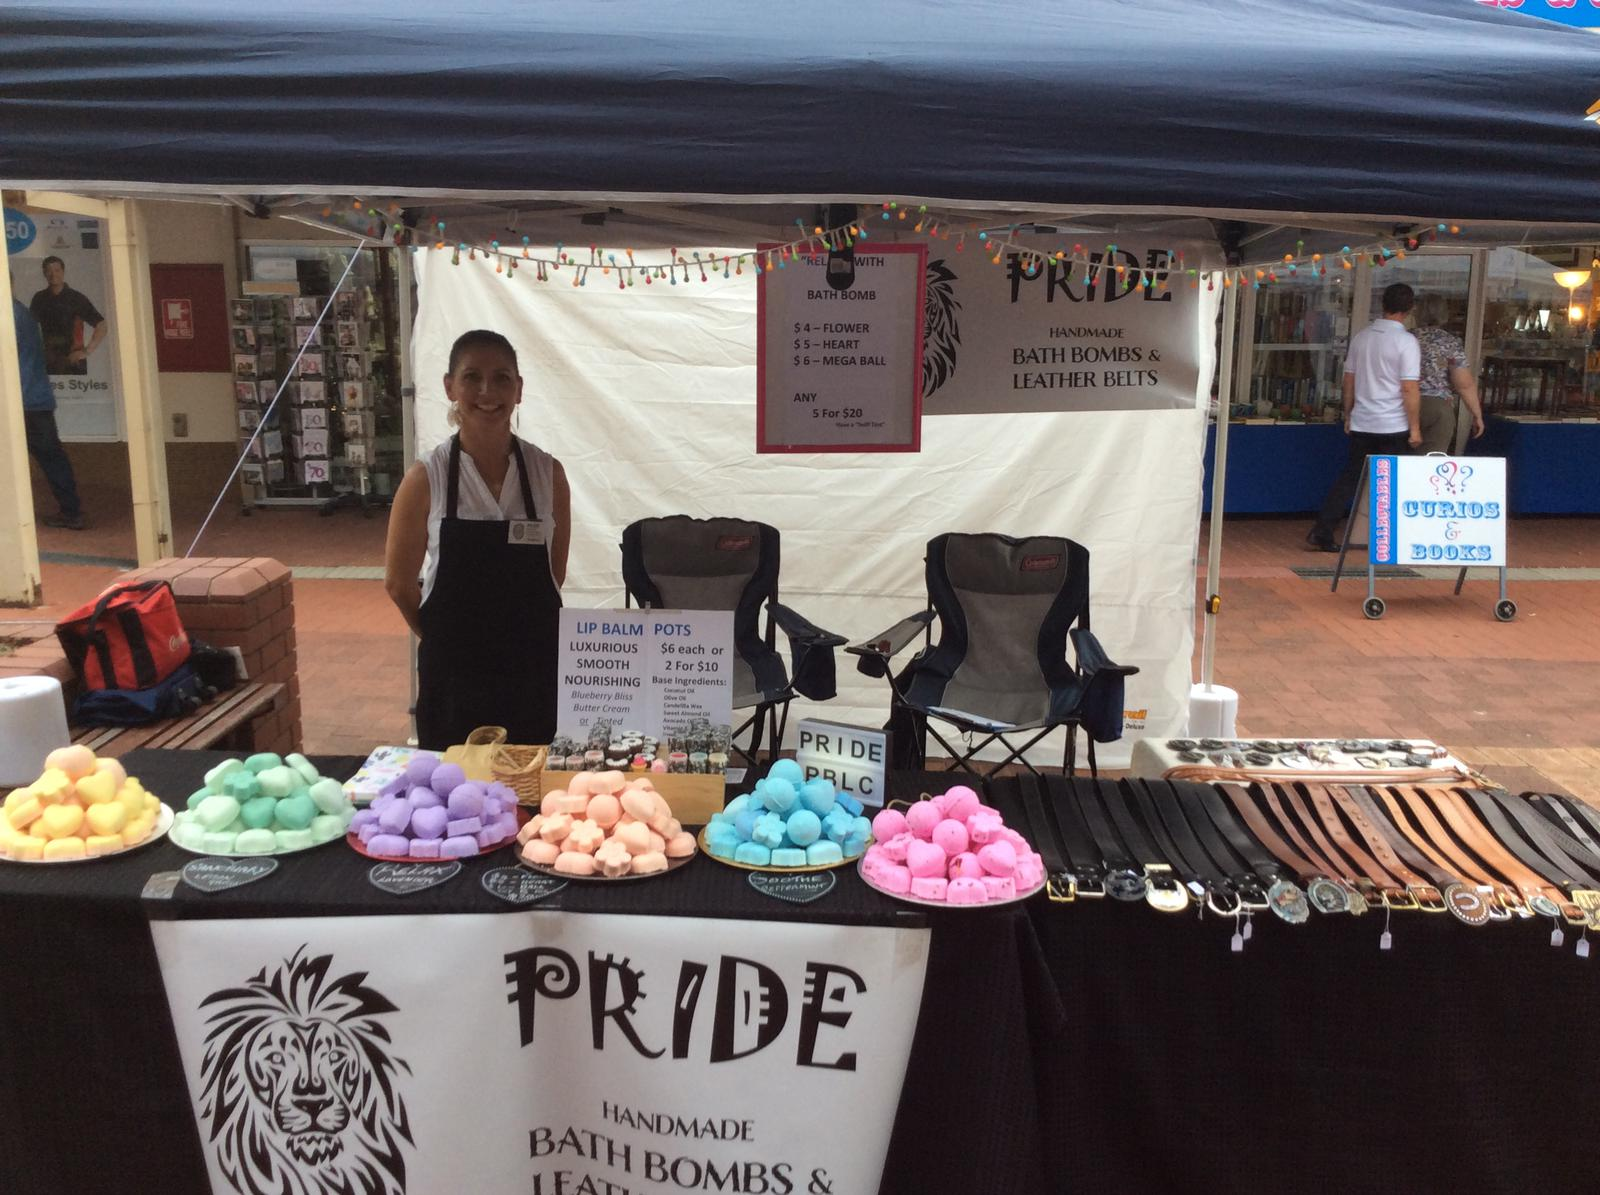 Pride Handcrafted Leather Belts,Handmade Bath Bombs and Lip Care